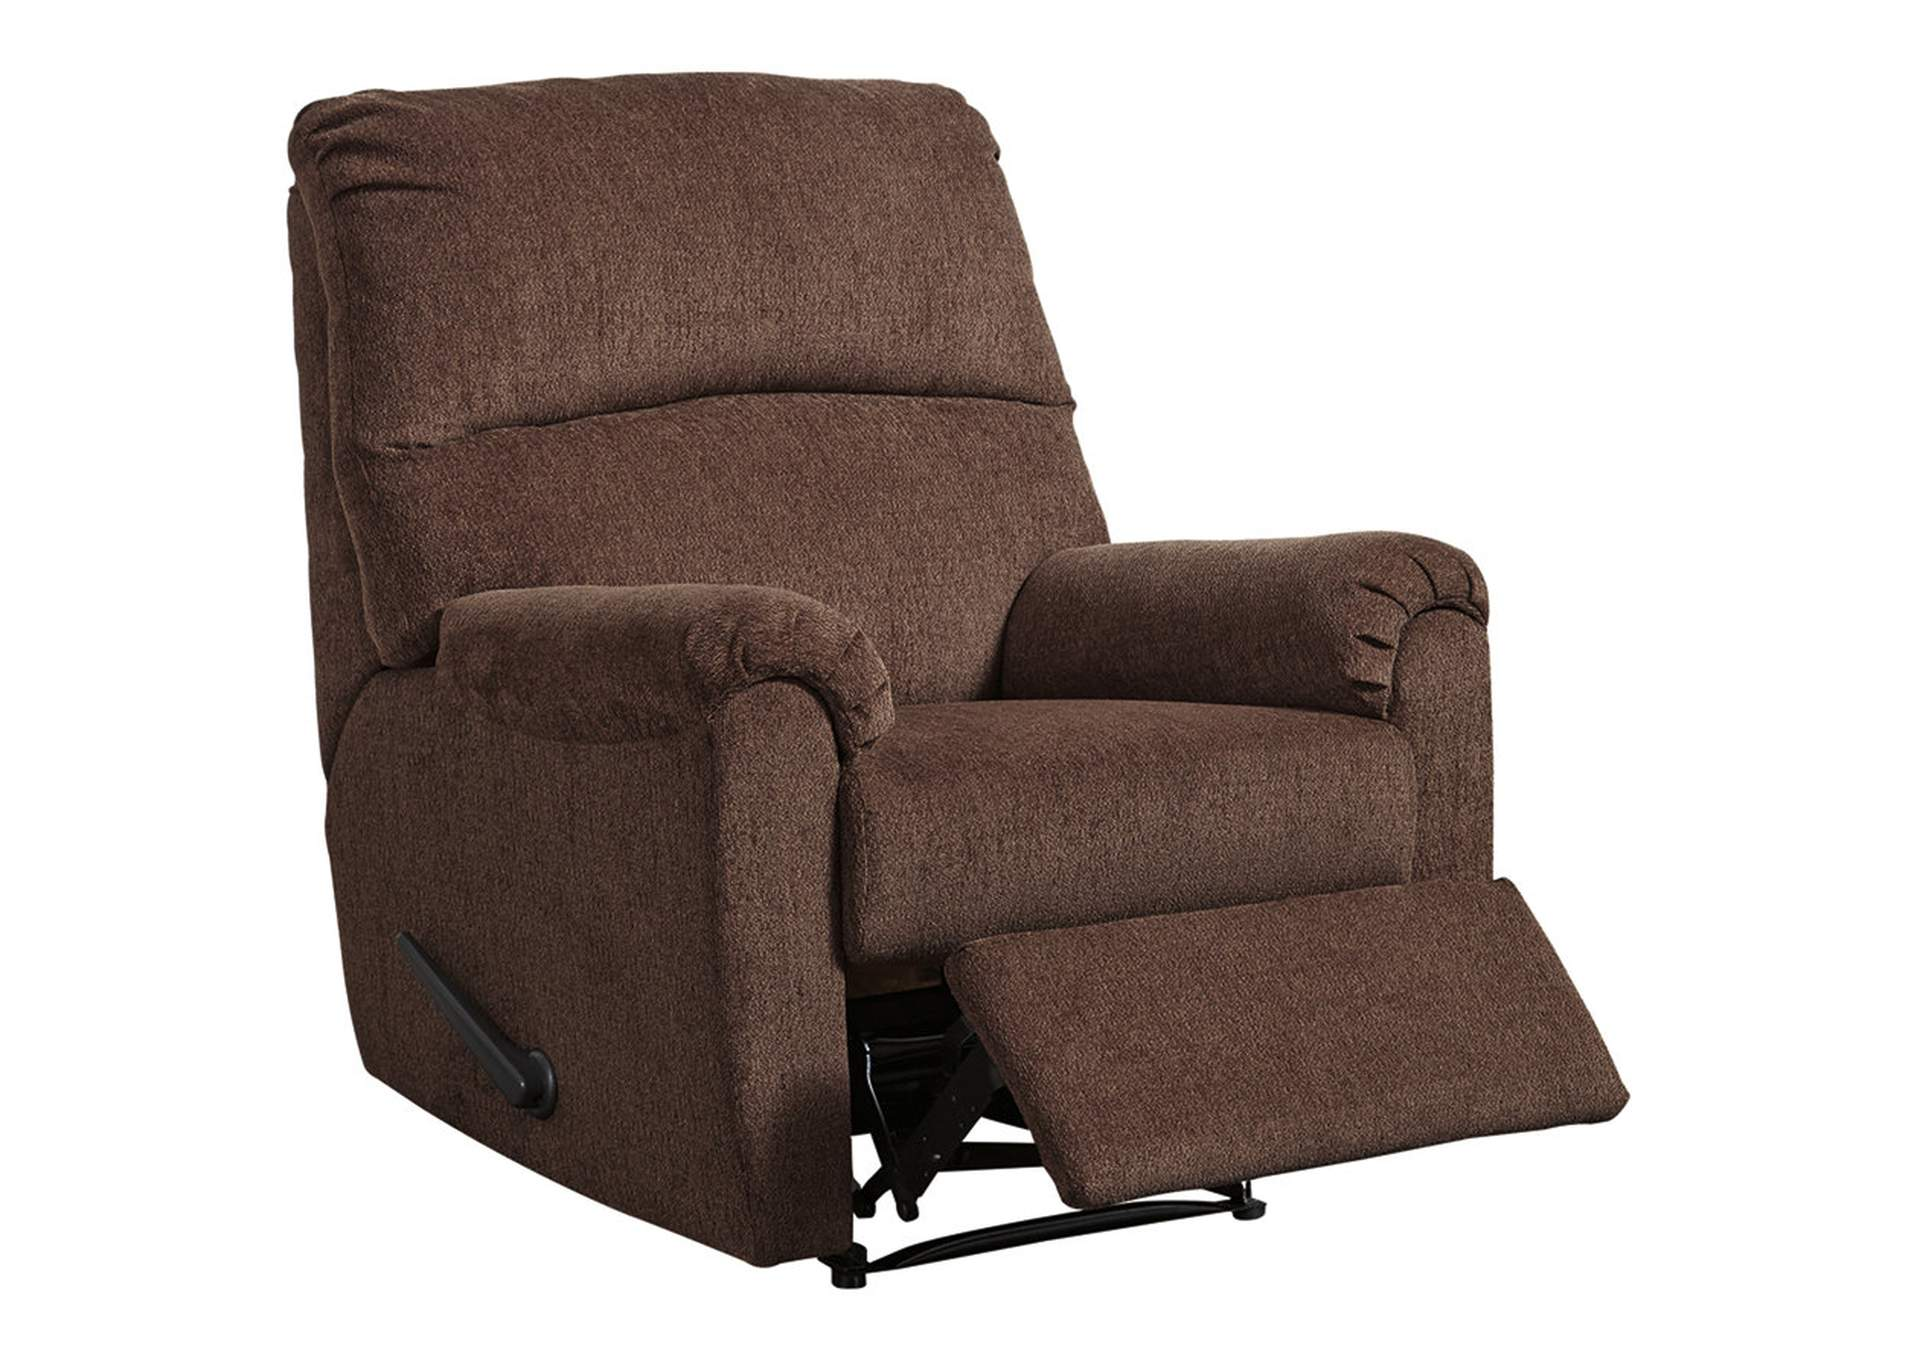 Nerviano Chocolate Recliner,Signature Design By Ashley